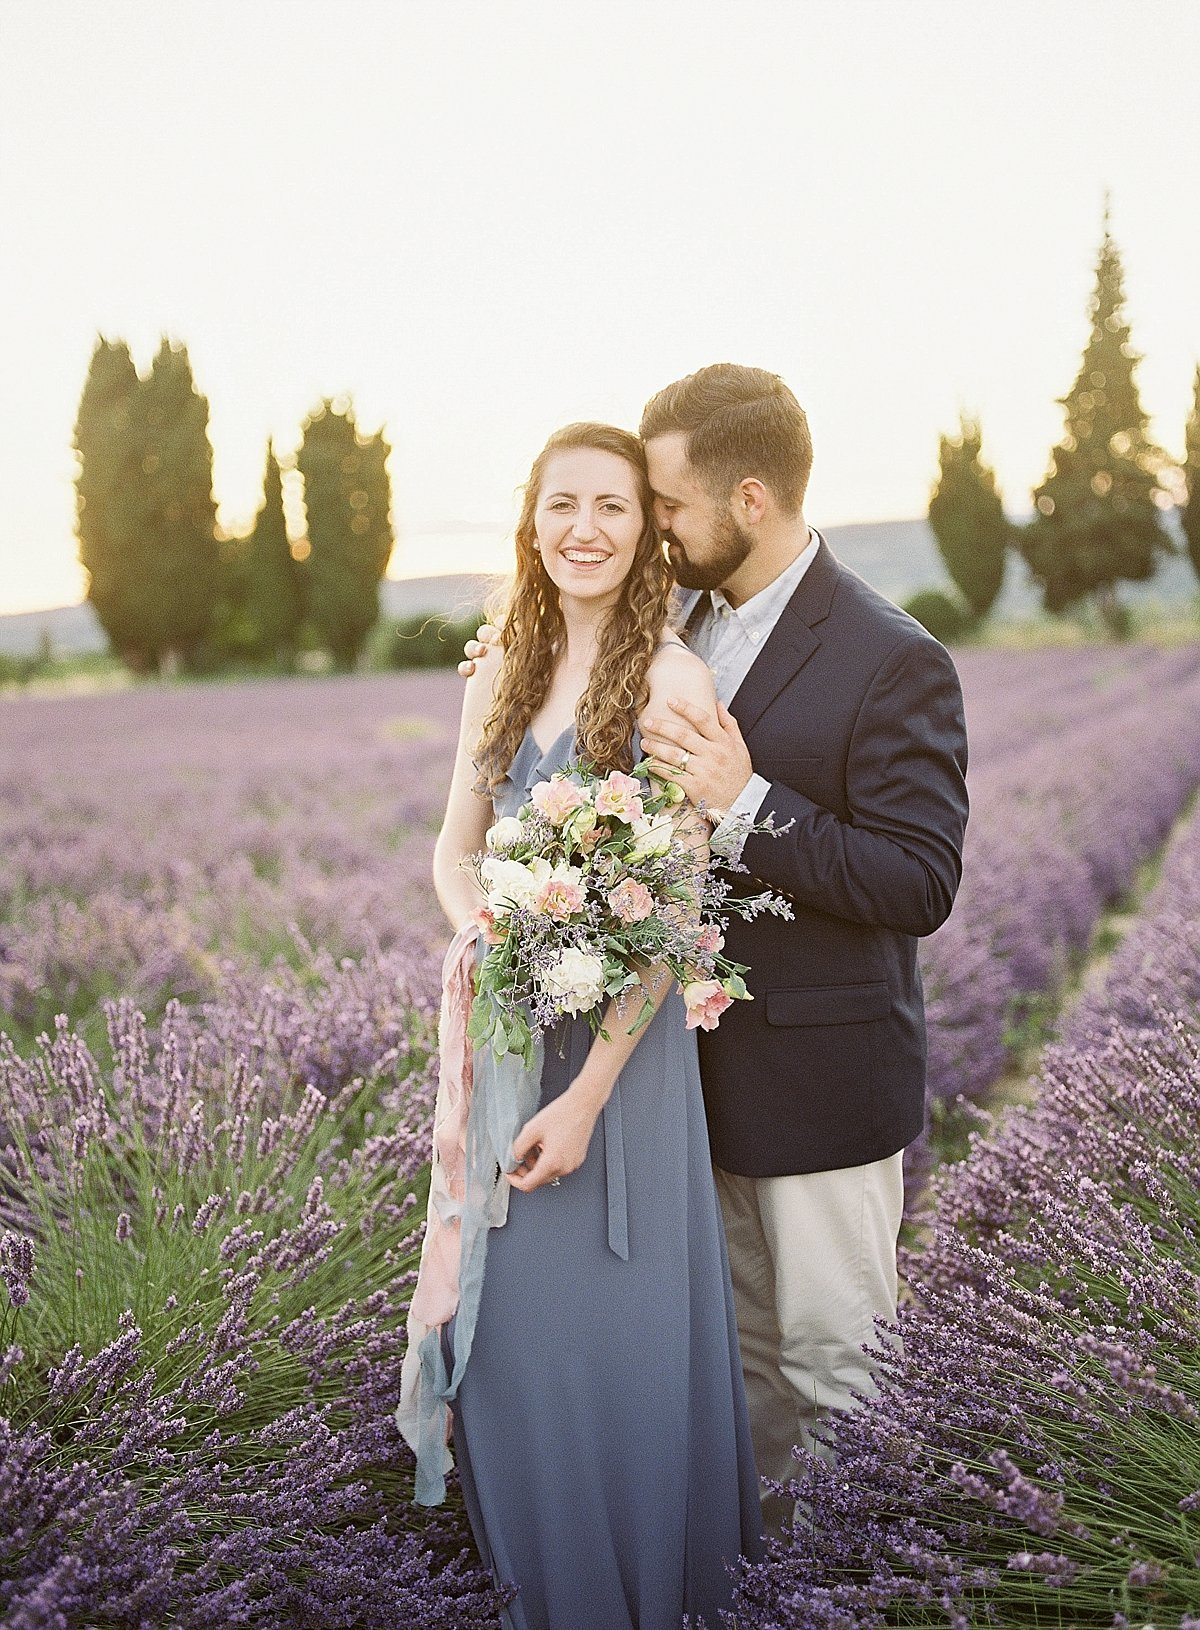 France-lavender-anniversary-session-alicia-yarrish-photography-26-2